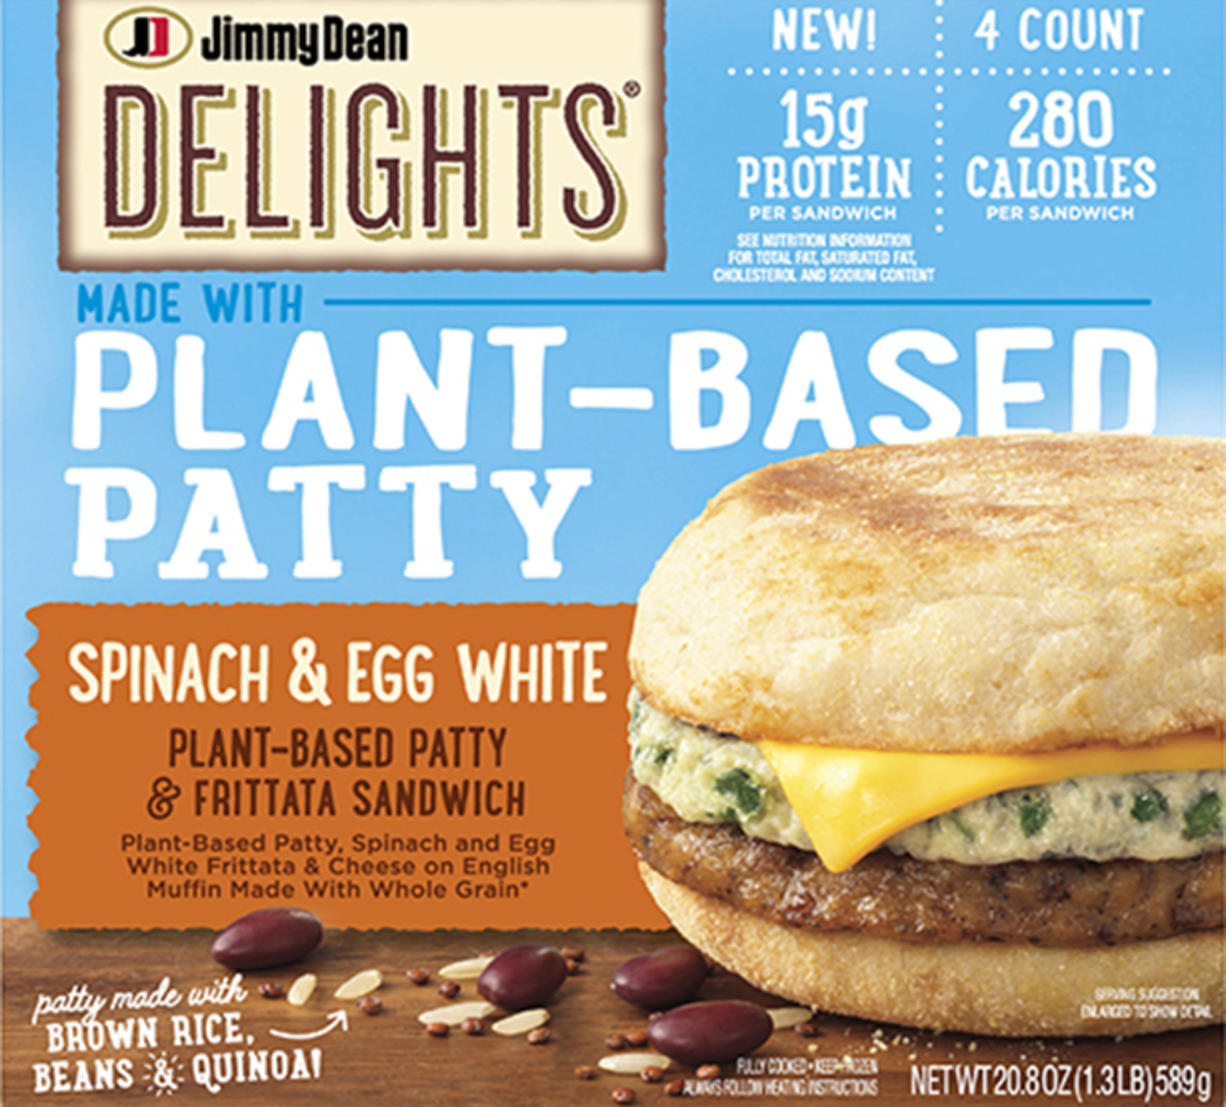 Tyson Foods' spinach frittata sandwich, which will launch in the spring, uses a patty made of soy protein, black beans, brown rice, quinoa, and egg white.